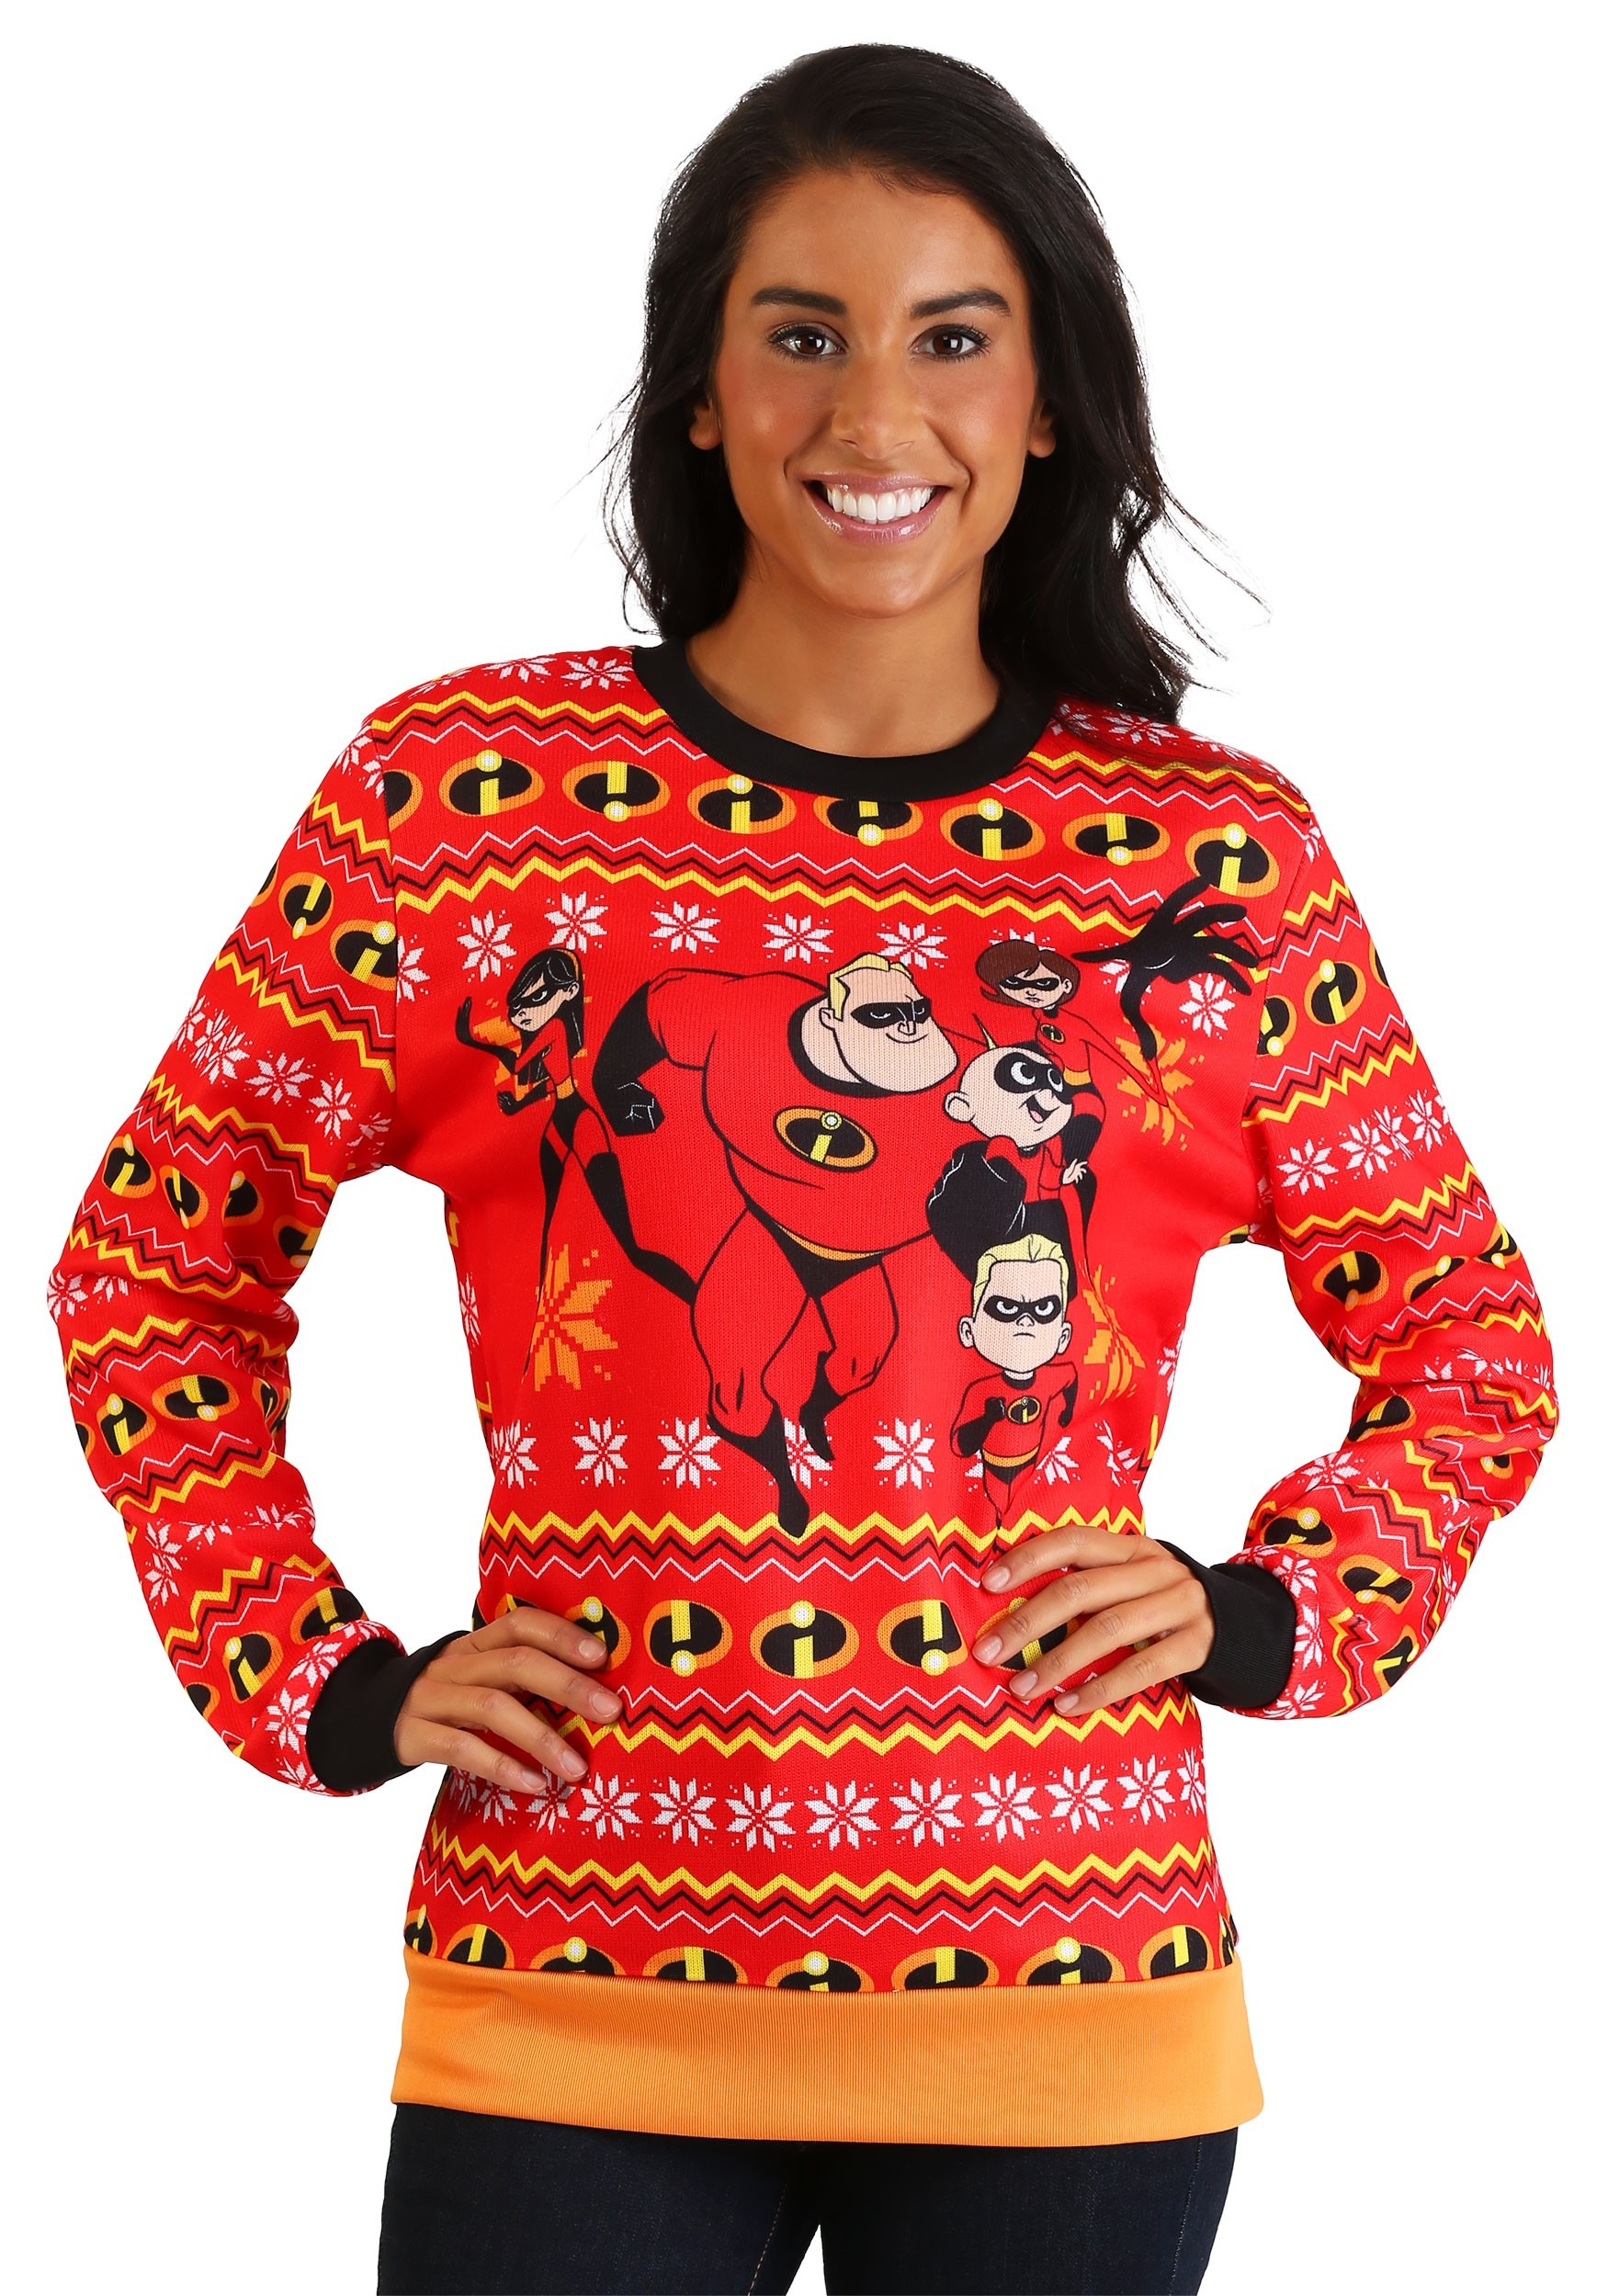 The Incredibles Red Ugly Christmas Sweater for Adults